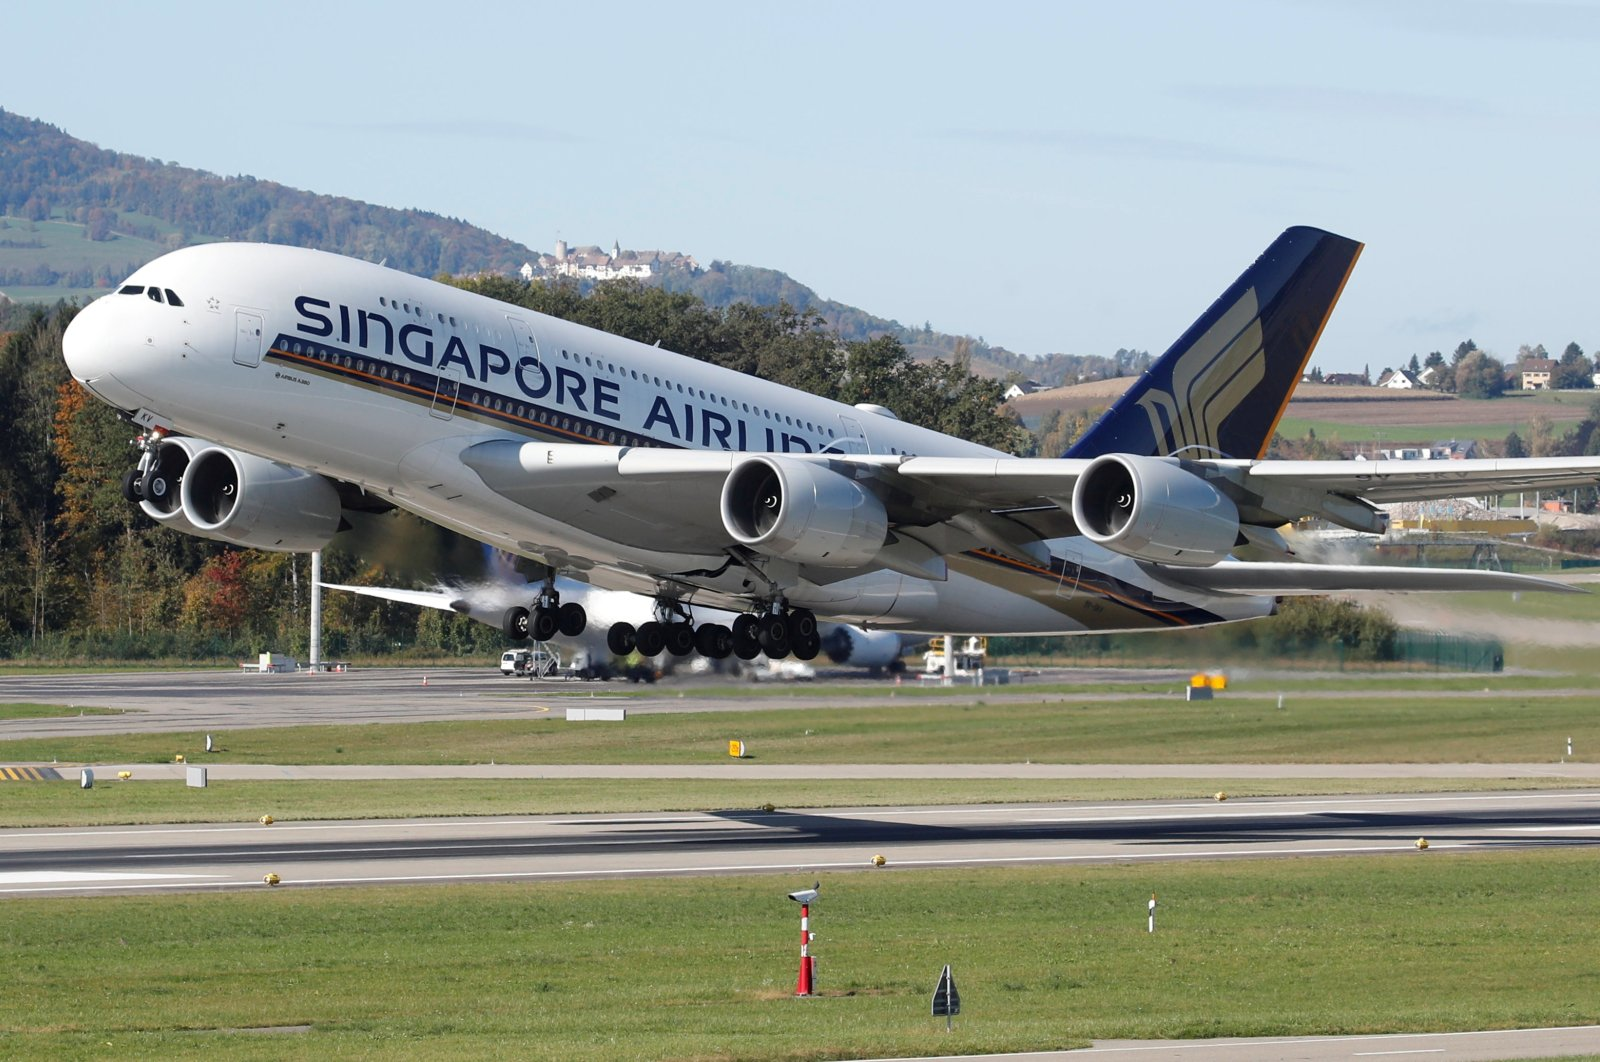 An Airbus A380-800 aircraft of Singapore Airlines takes off from Zurich airport, Switzerland, Oct. 16, 2019. (Reuters Photo)